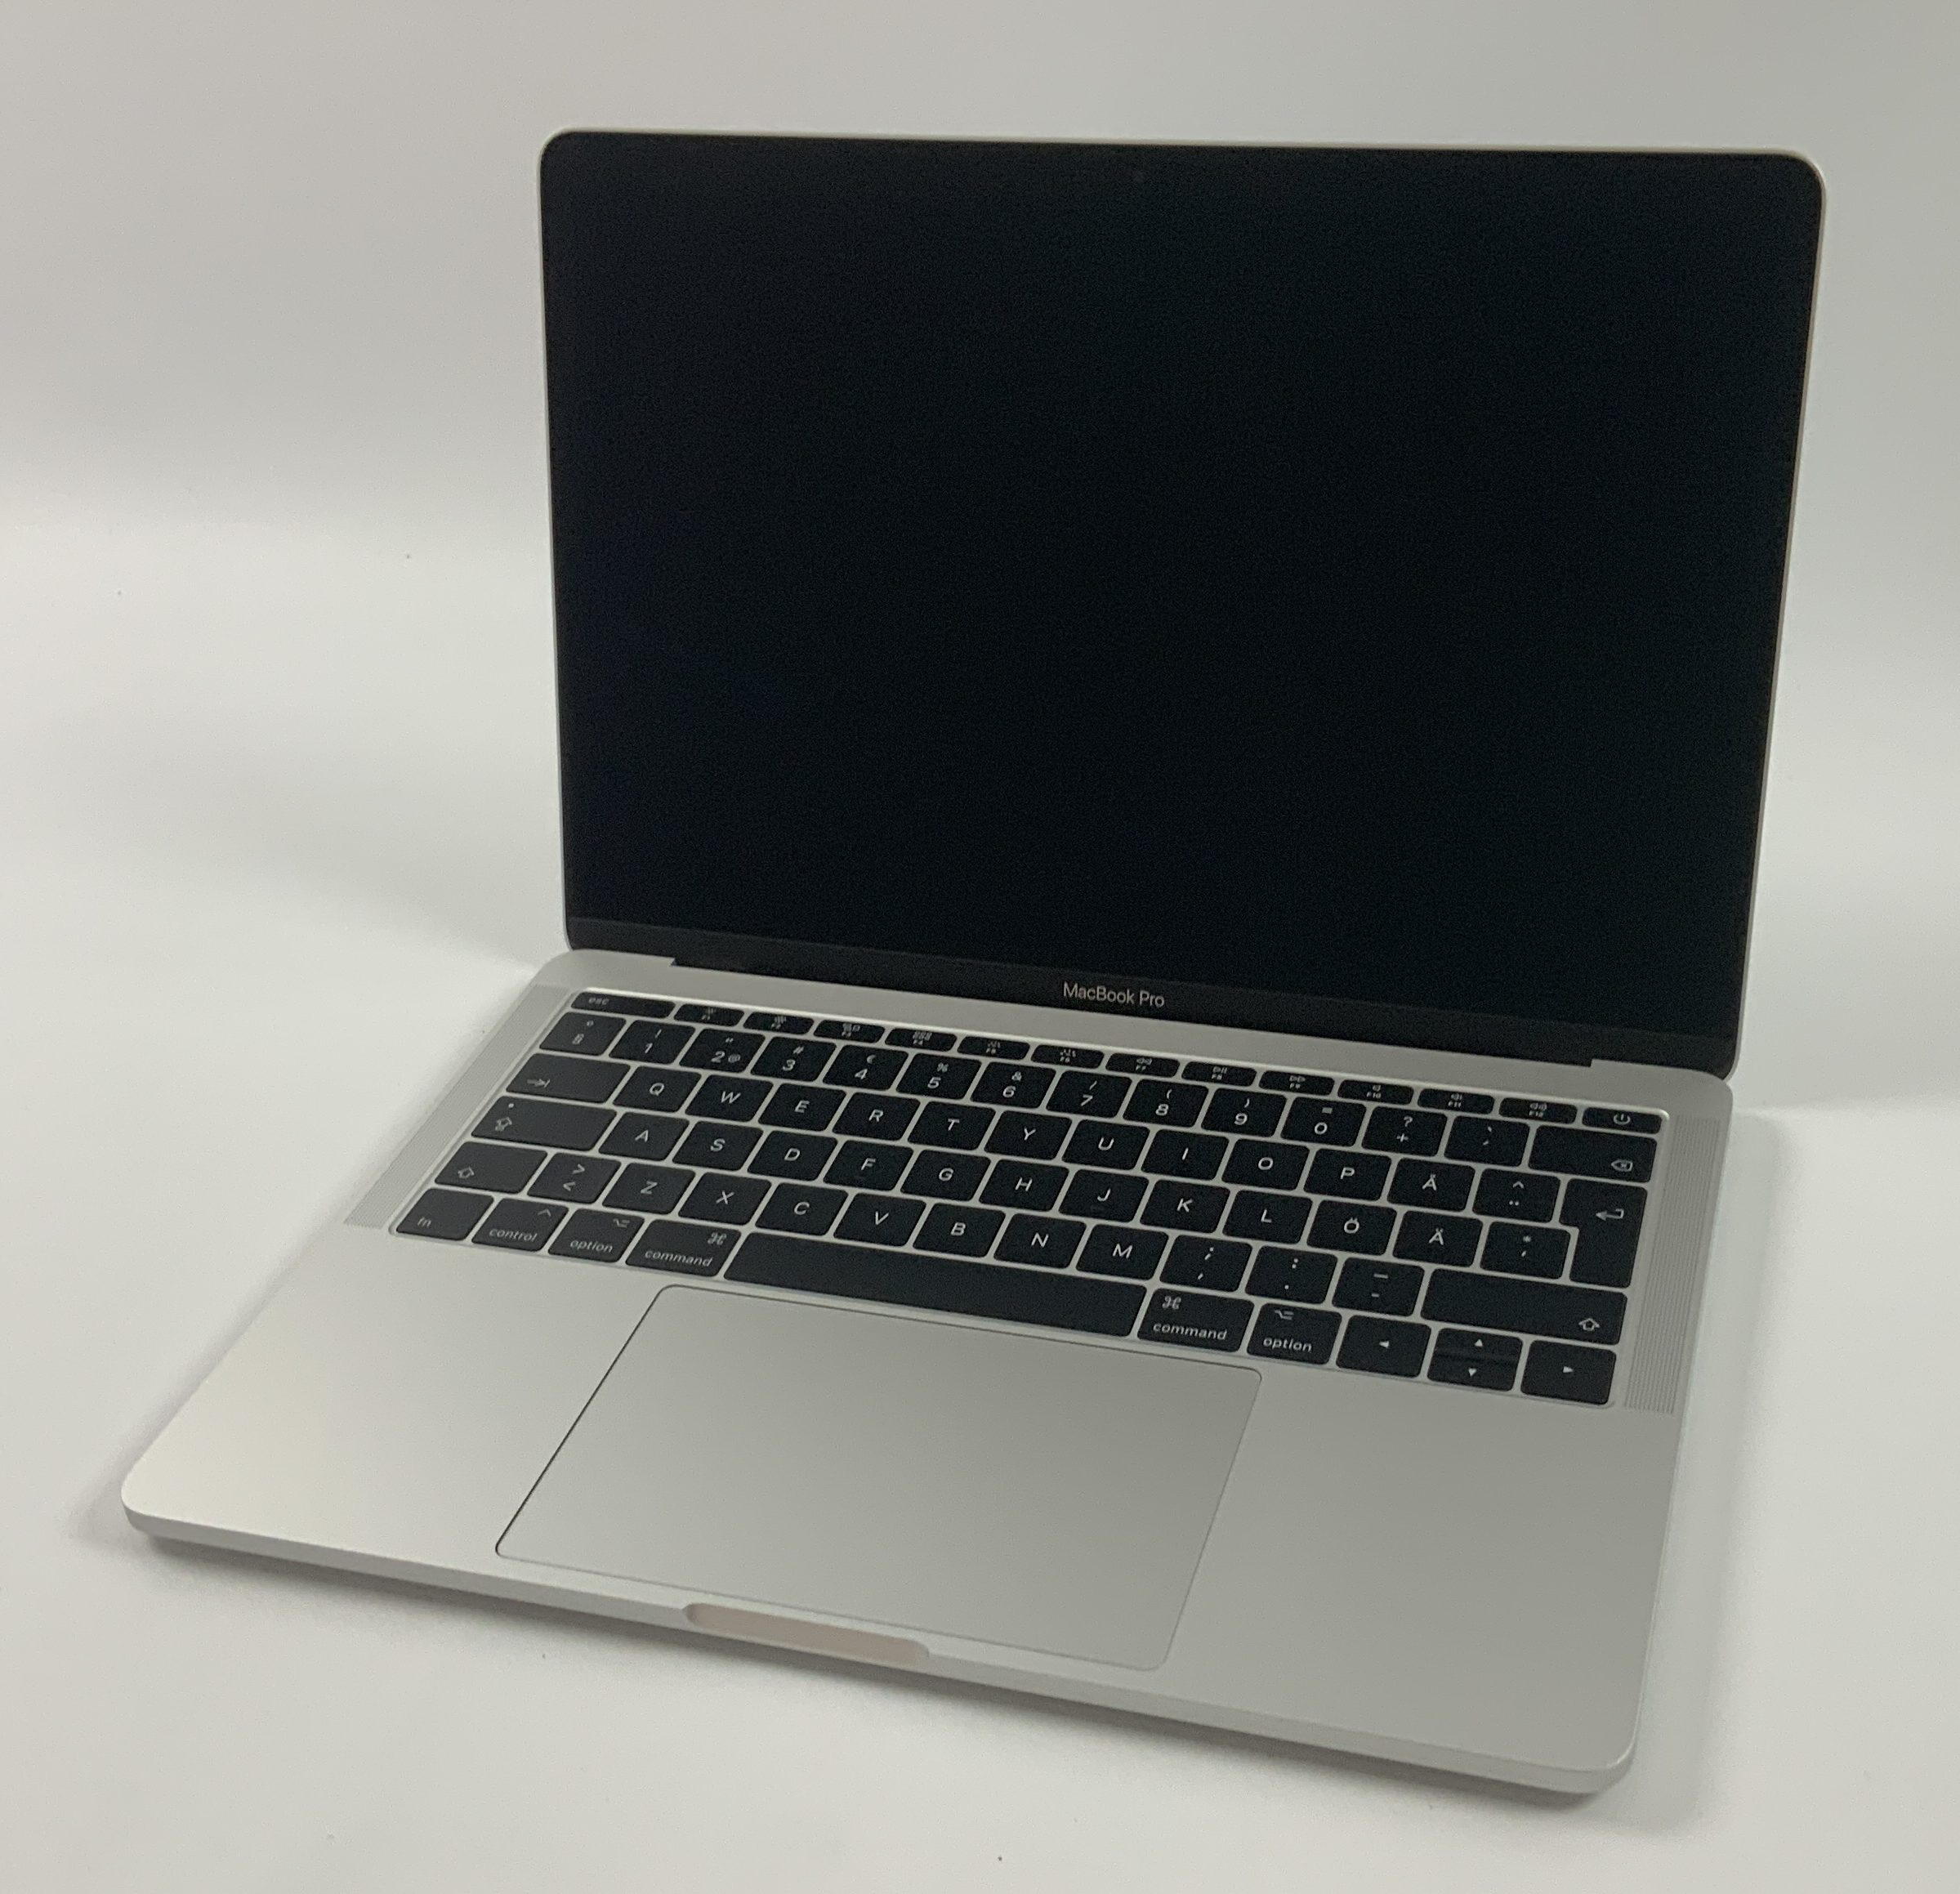 "MacBook Pro 13"" 2TBT Mid 2017 (Intel Core i5 2.3 GHz 8 GB RAM 256 GB SSD), Silver, Intel Core i5 2.3 GHz, 8 GB RAM, 256 GB SSD, immagine 1"